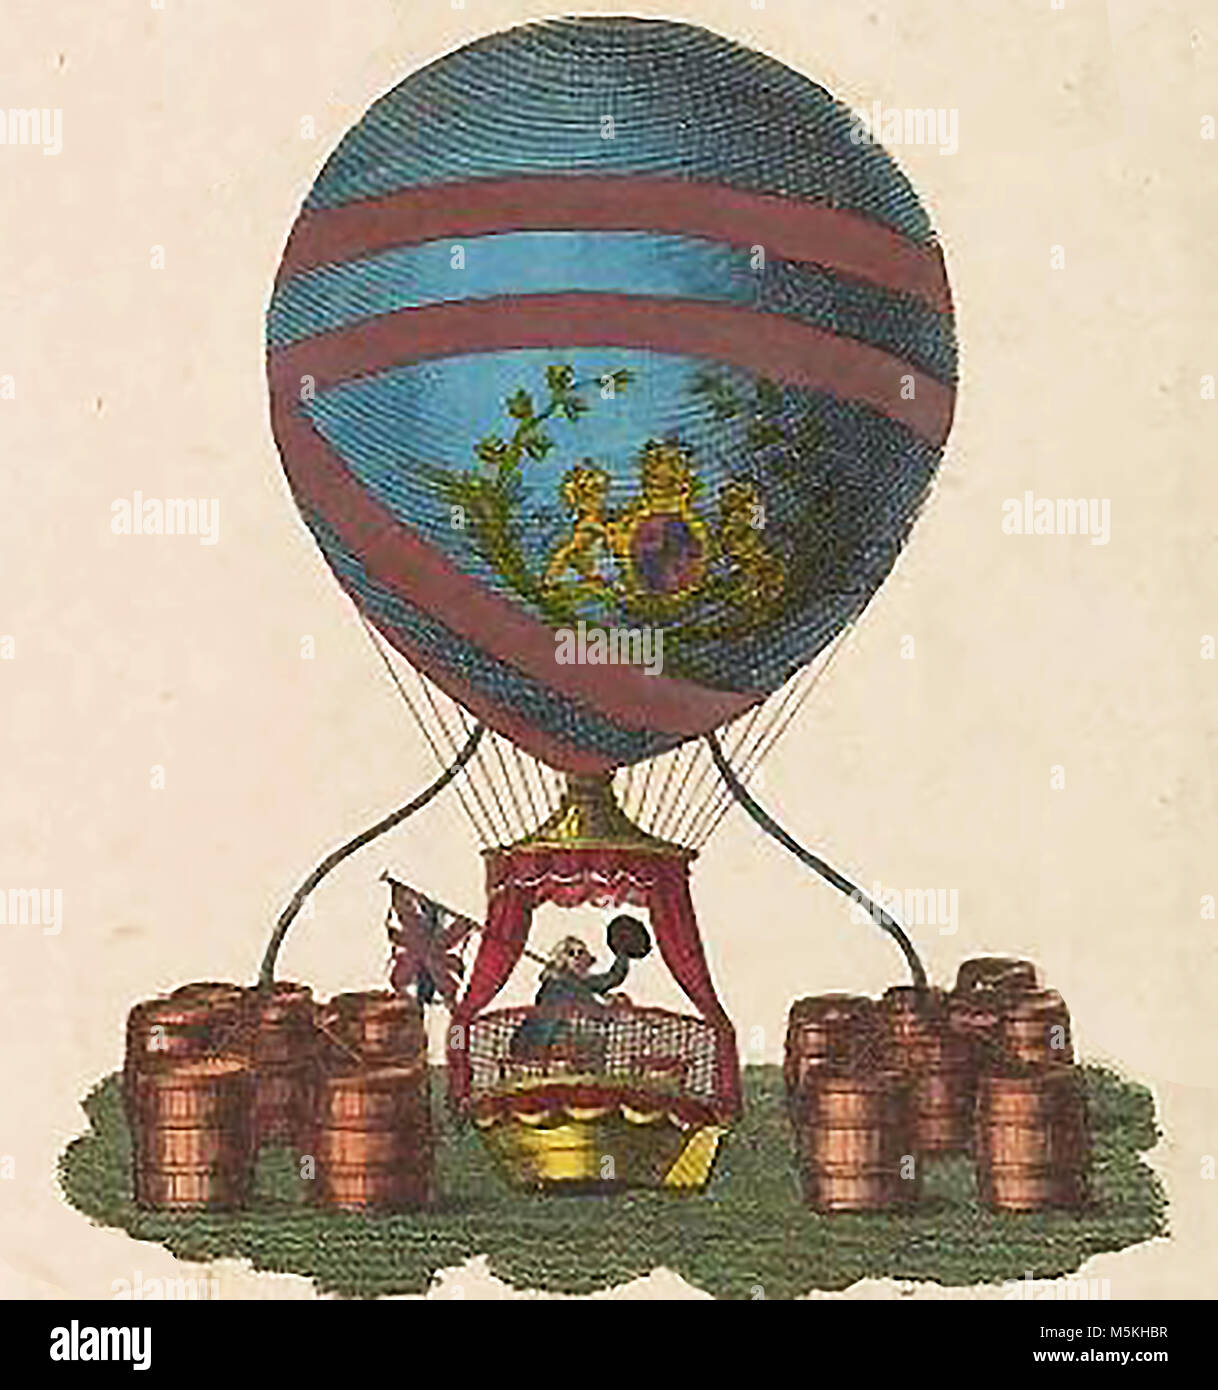 Vincenzo Lunardi's balloon, He was known as the 'The Daredevil Aeronaut' - Stock Image